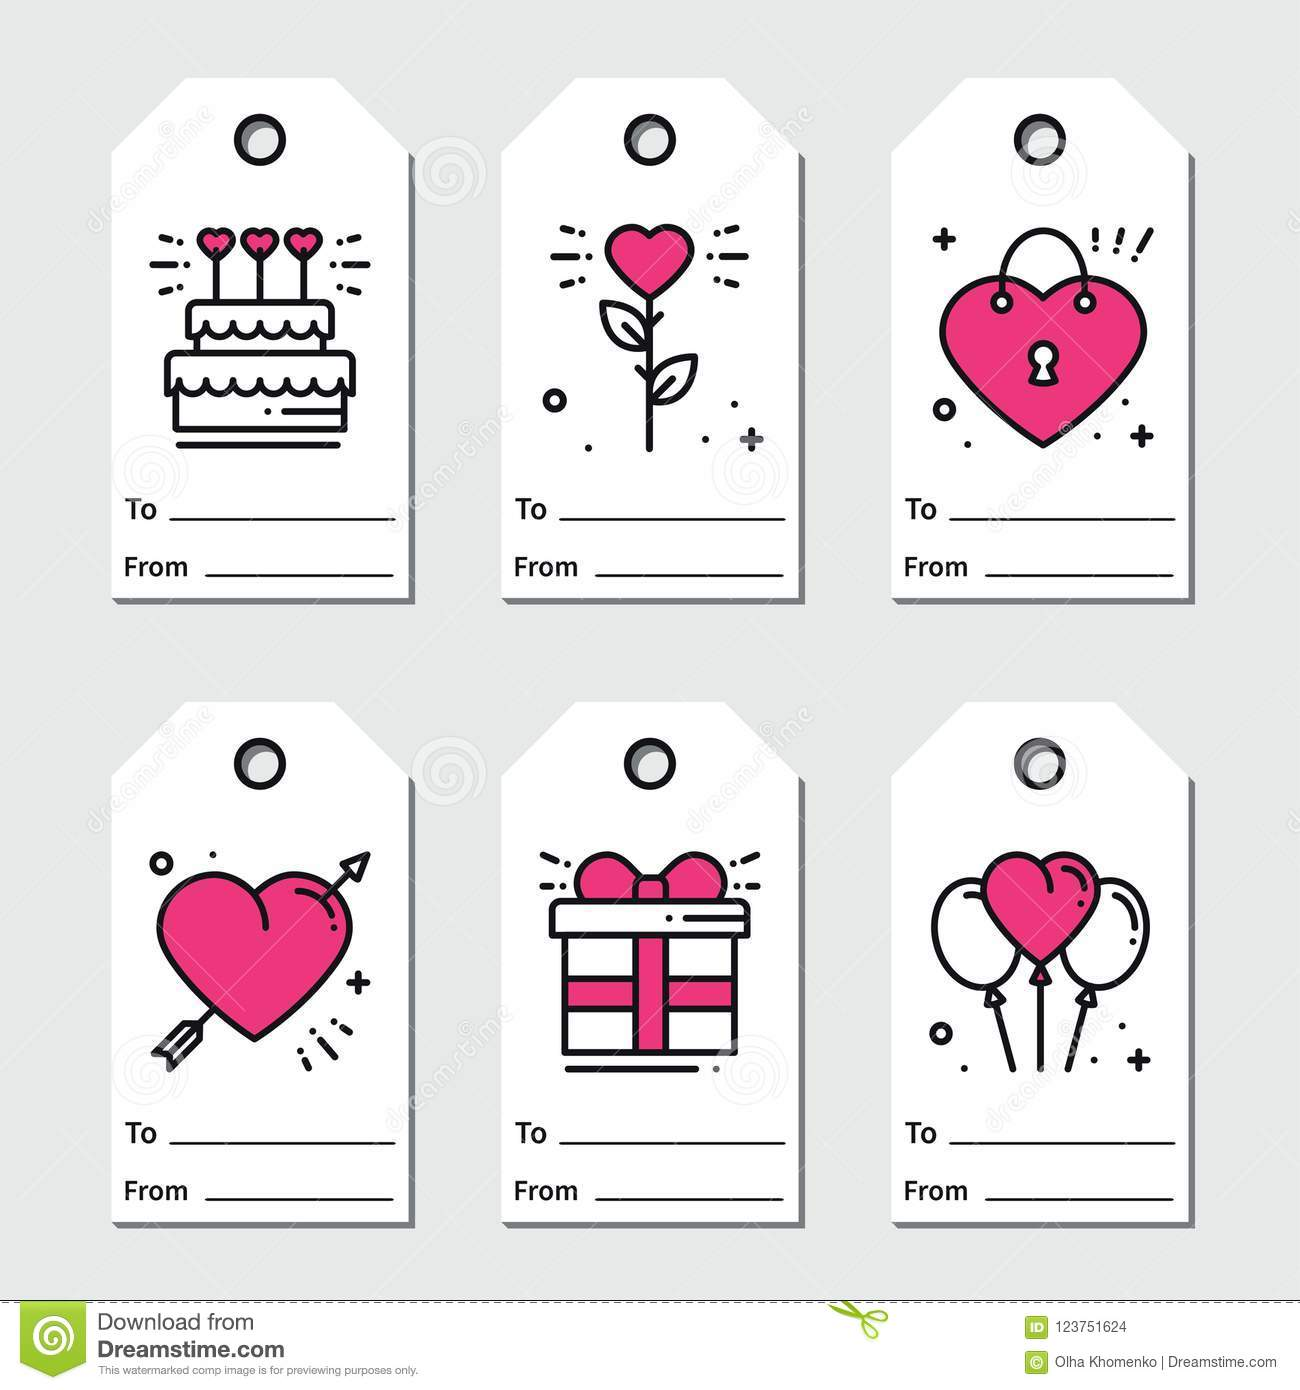 image regarding Valentine Labels Printable named St Valentine`s Working day Reward Tags. Printable Tags Assortment